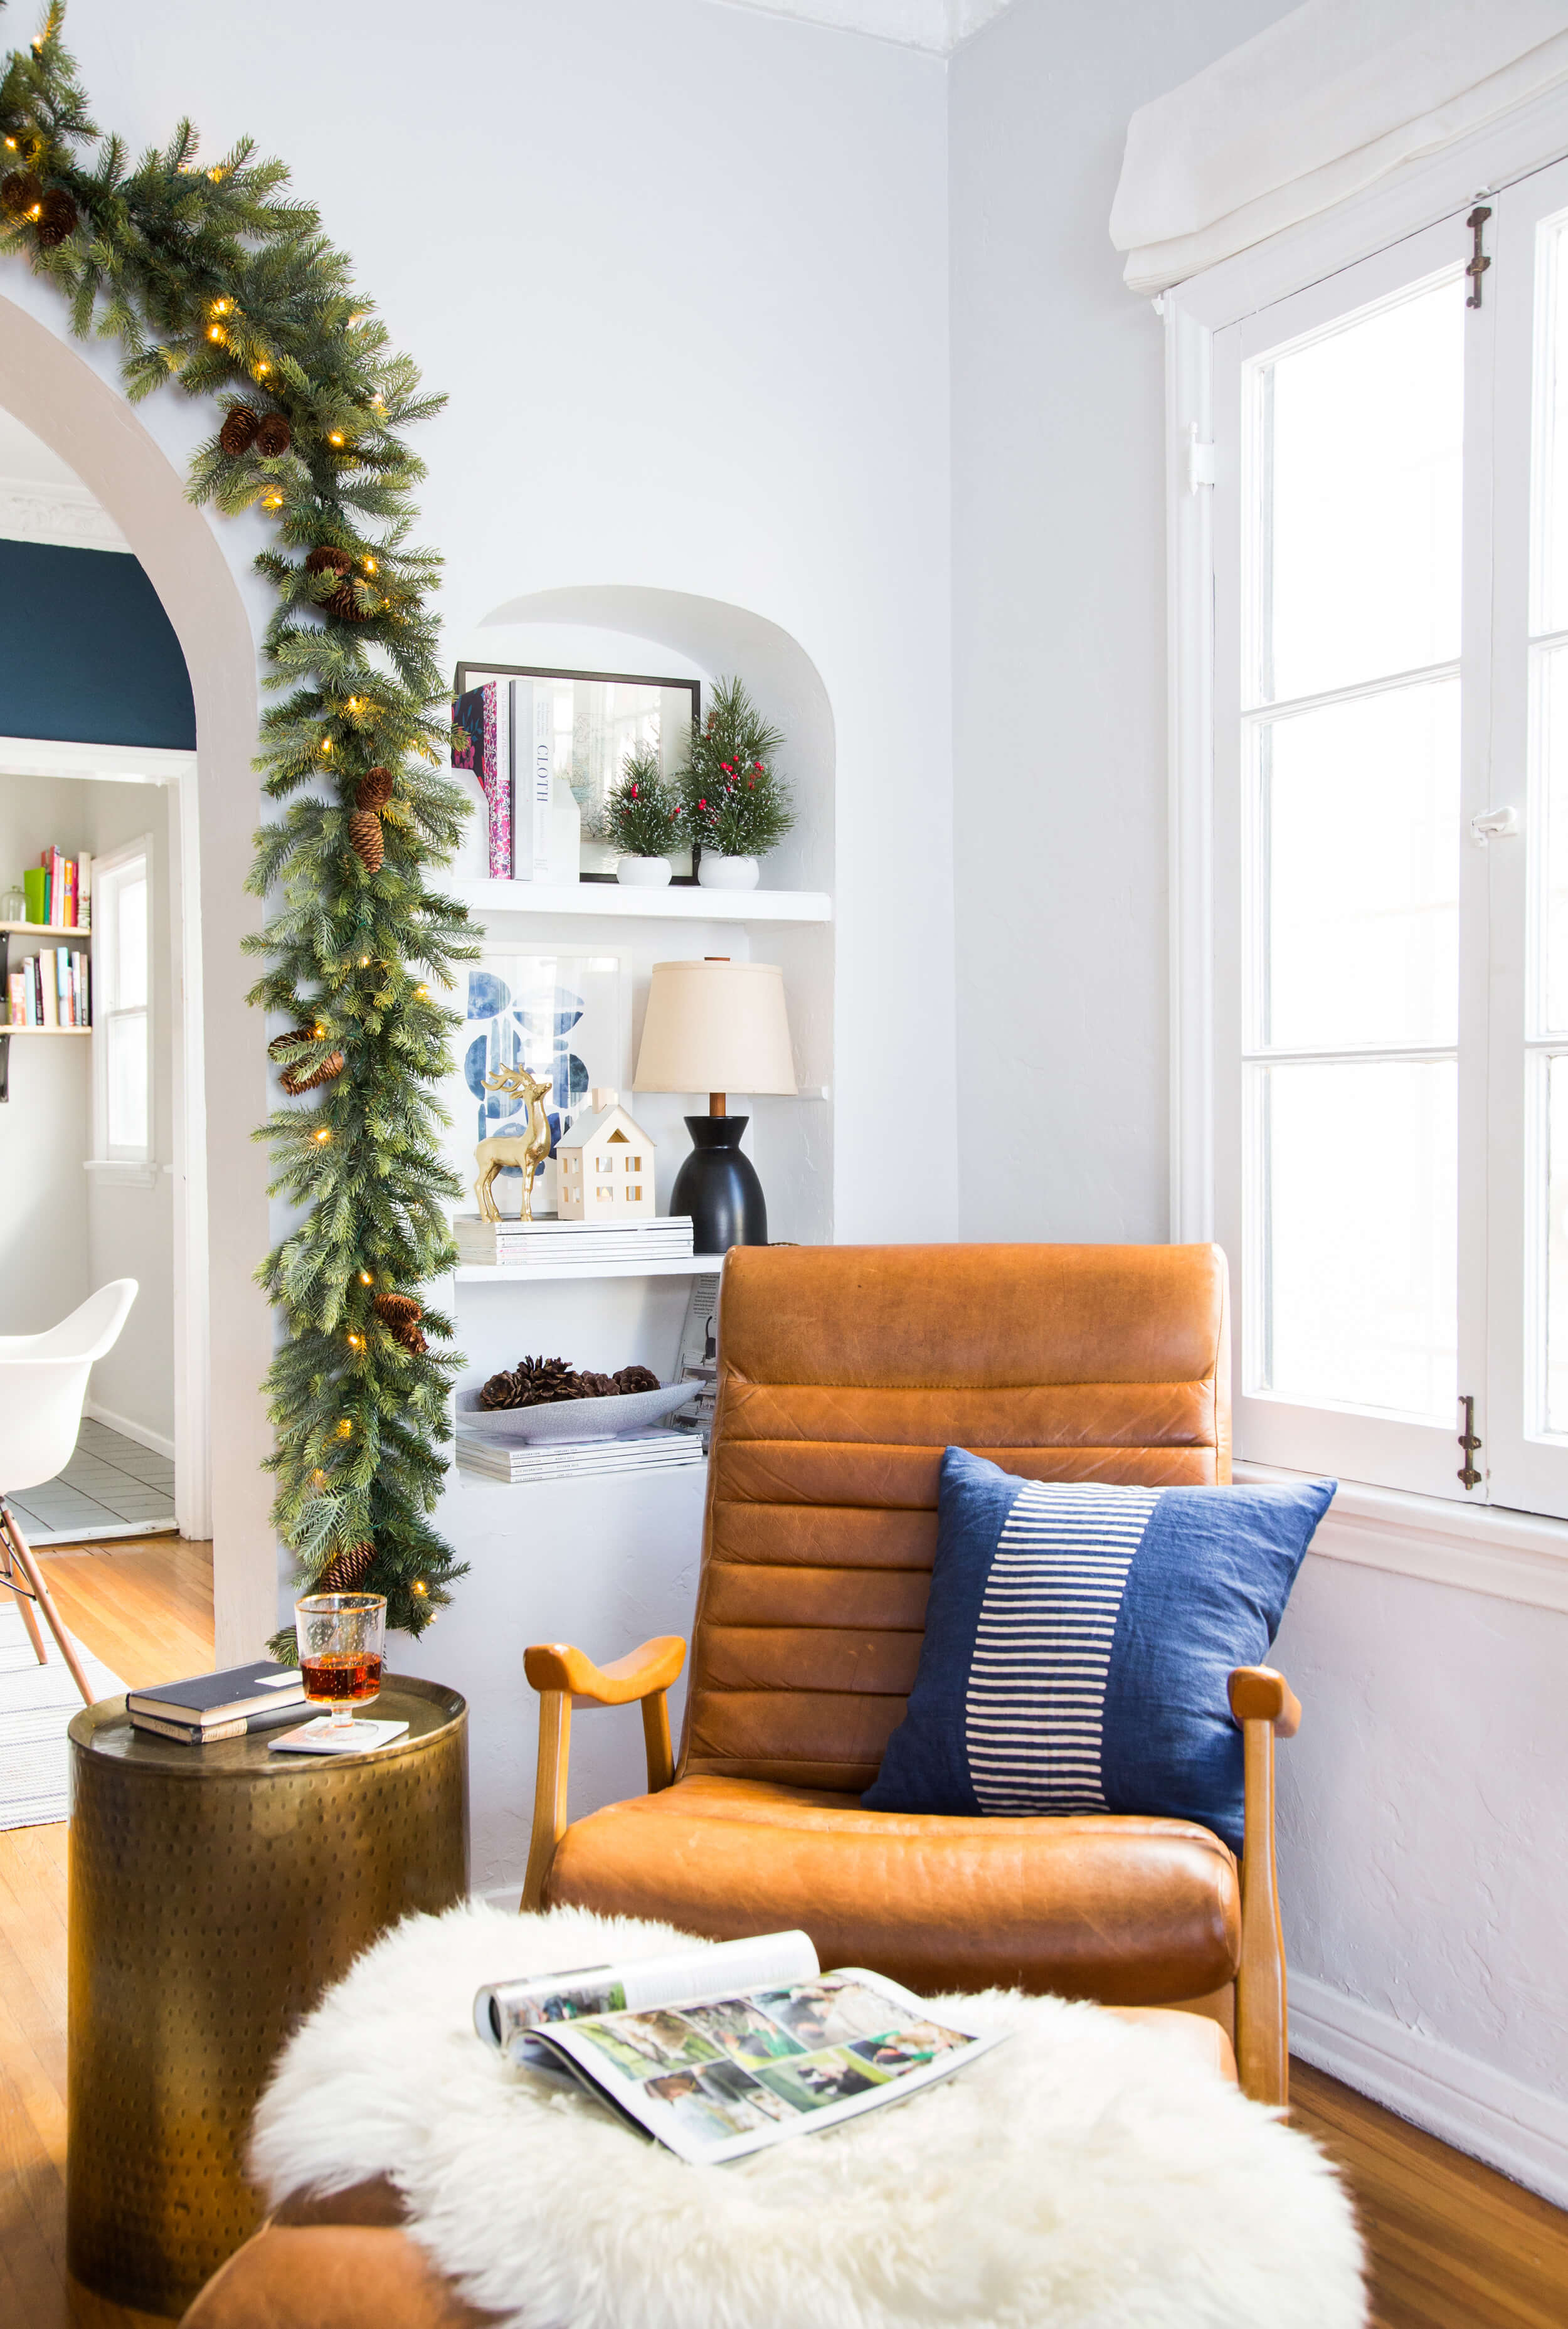 GINNY_MACDONALD_HOLIDAY_DECORATING_READING_NOOK